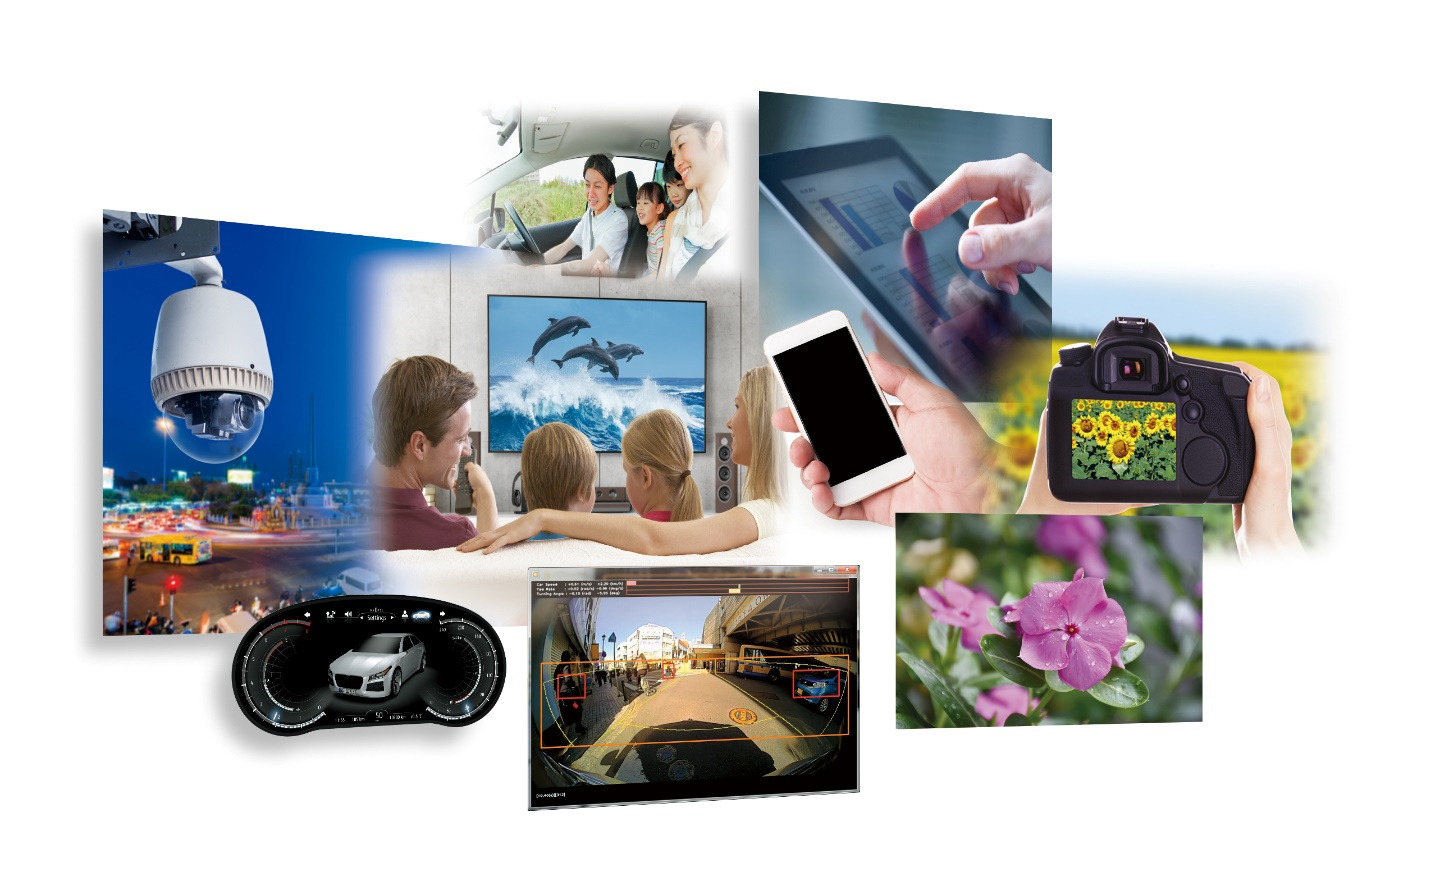 IoT-connected devices using HD-PLC technology